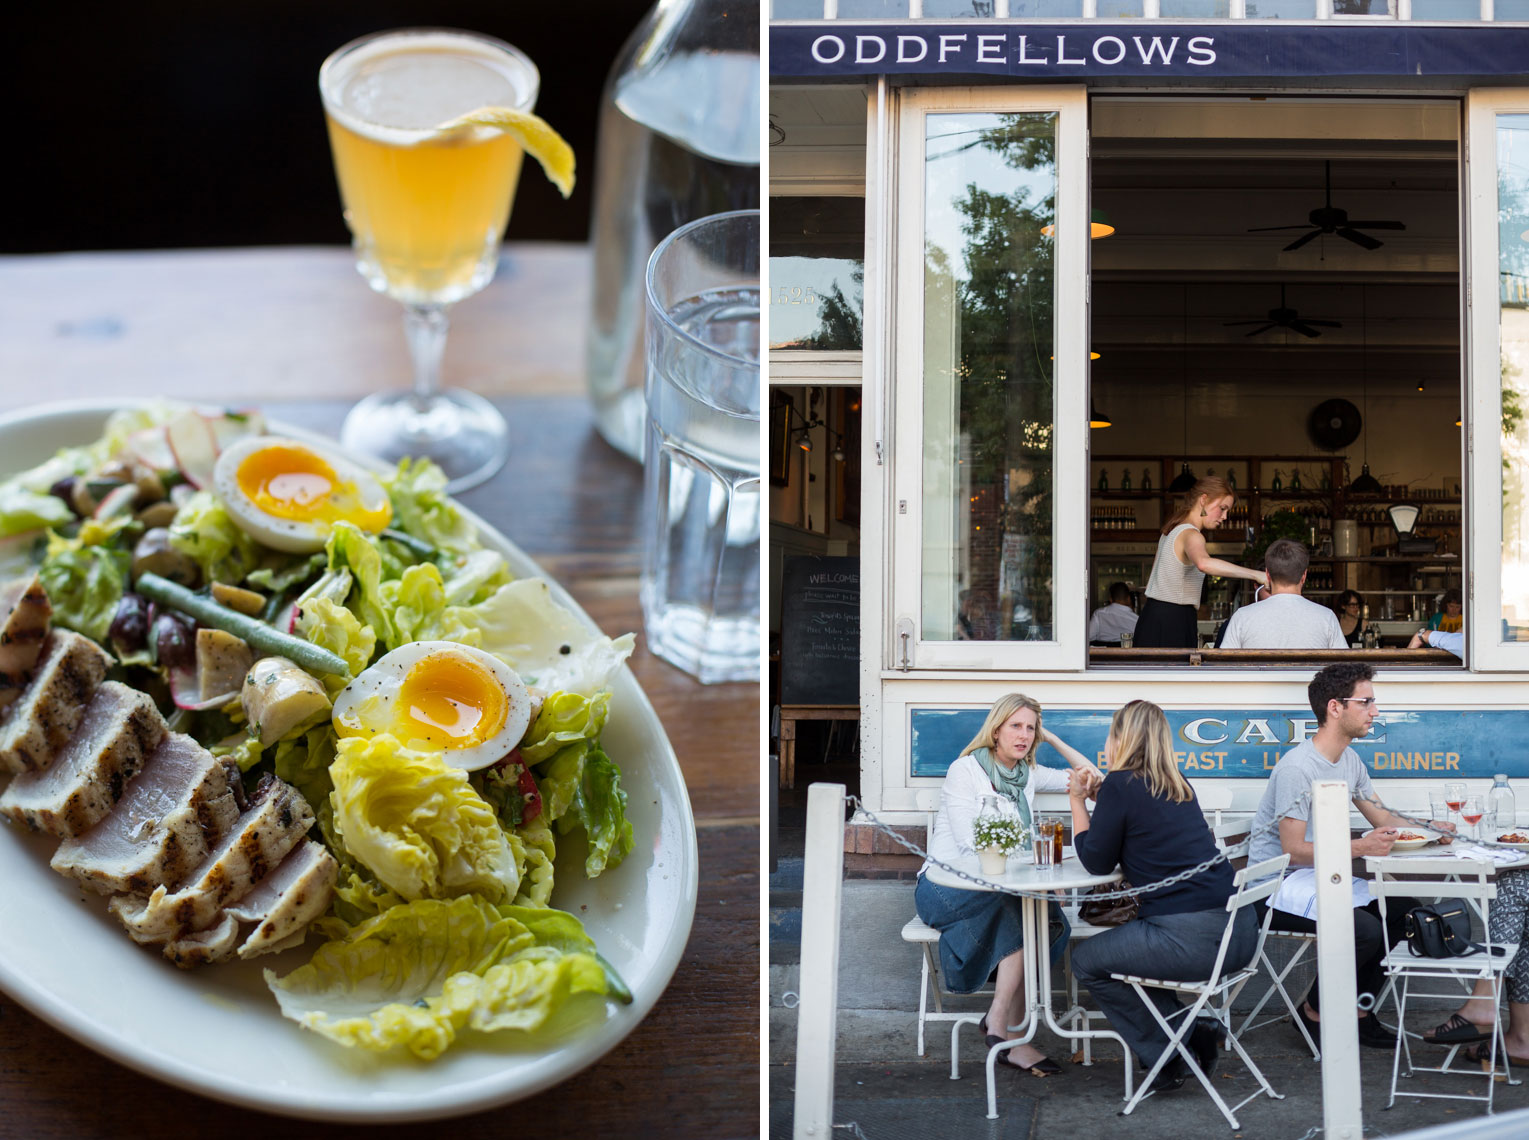 Oddfellows Restaurant